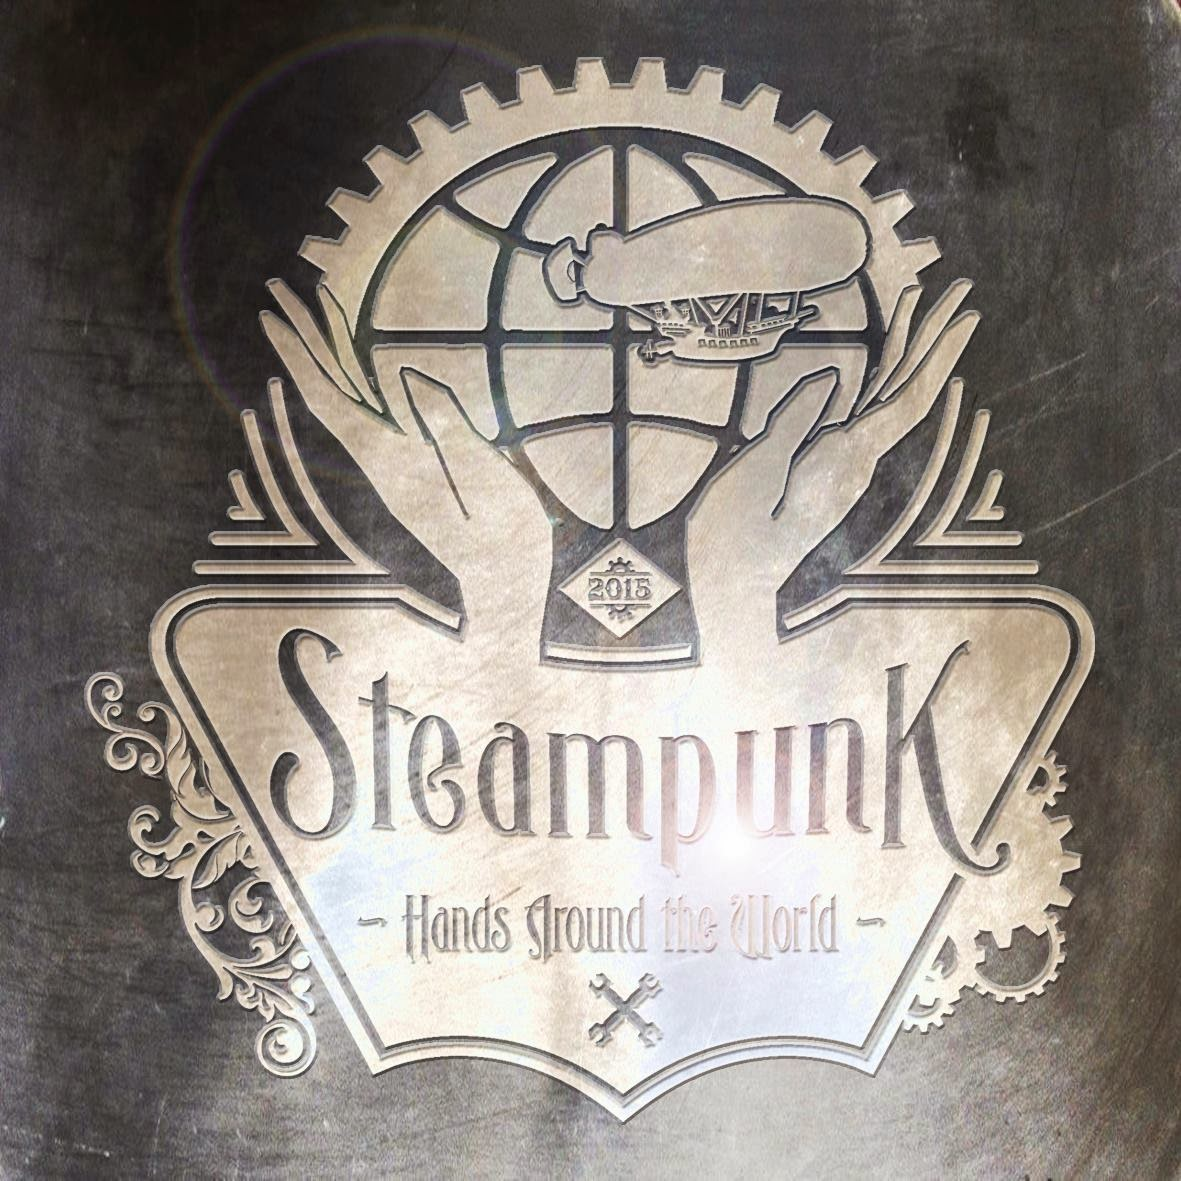 Steampunk Hands Around the World 2015